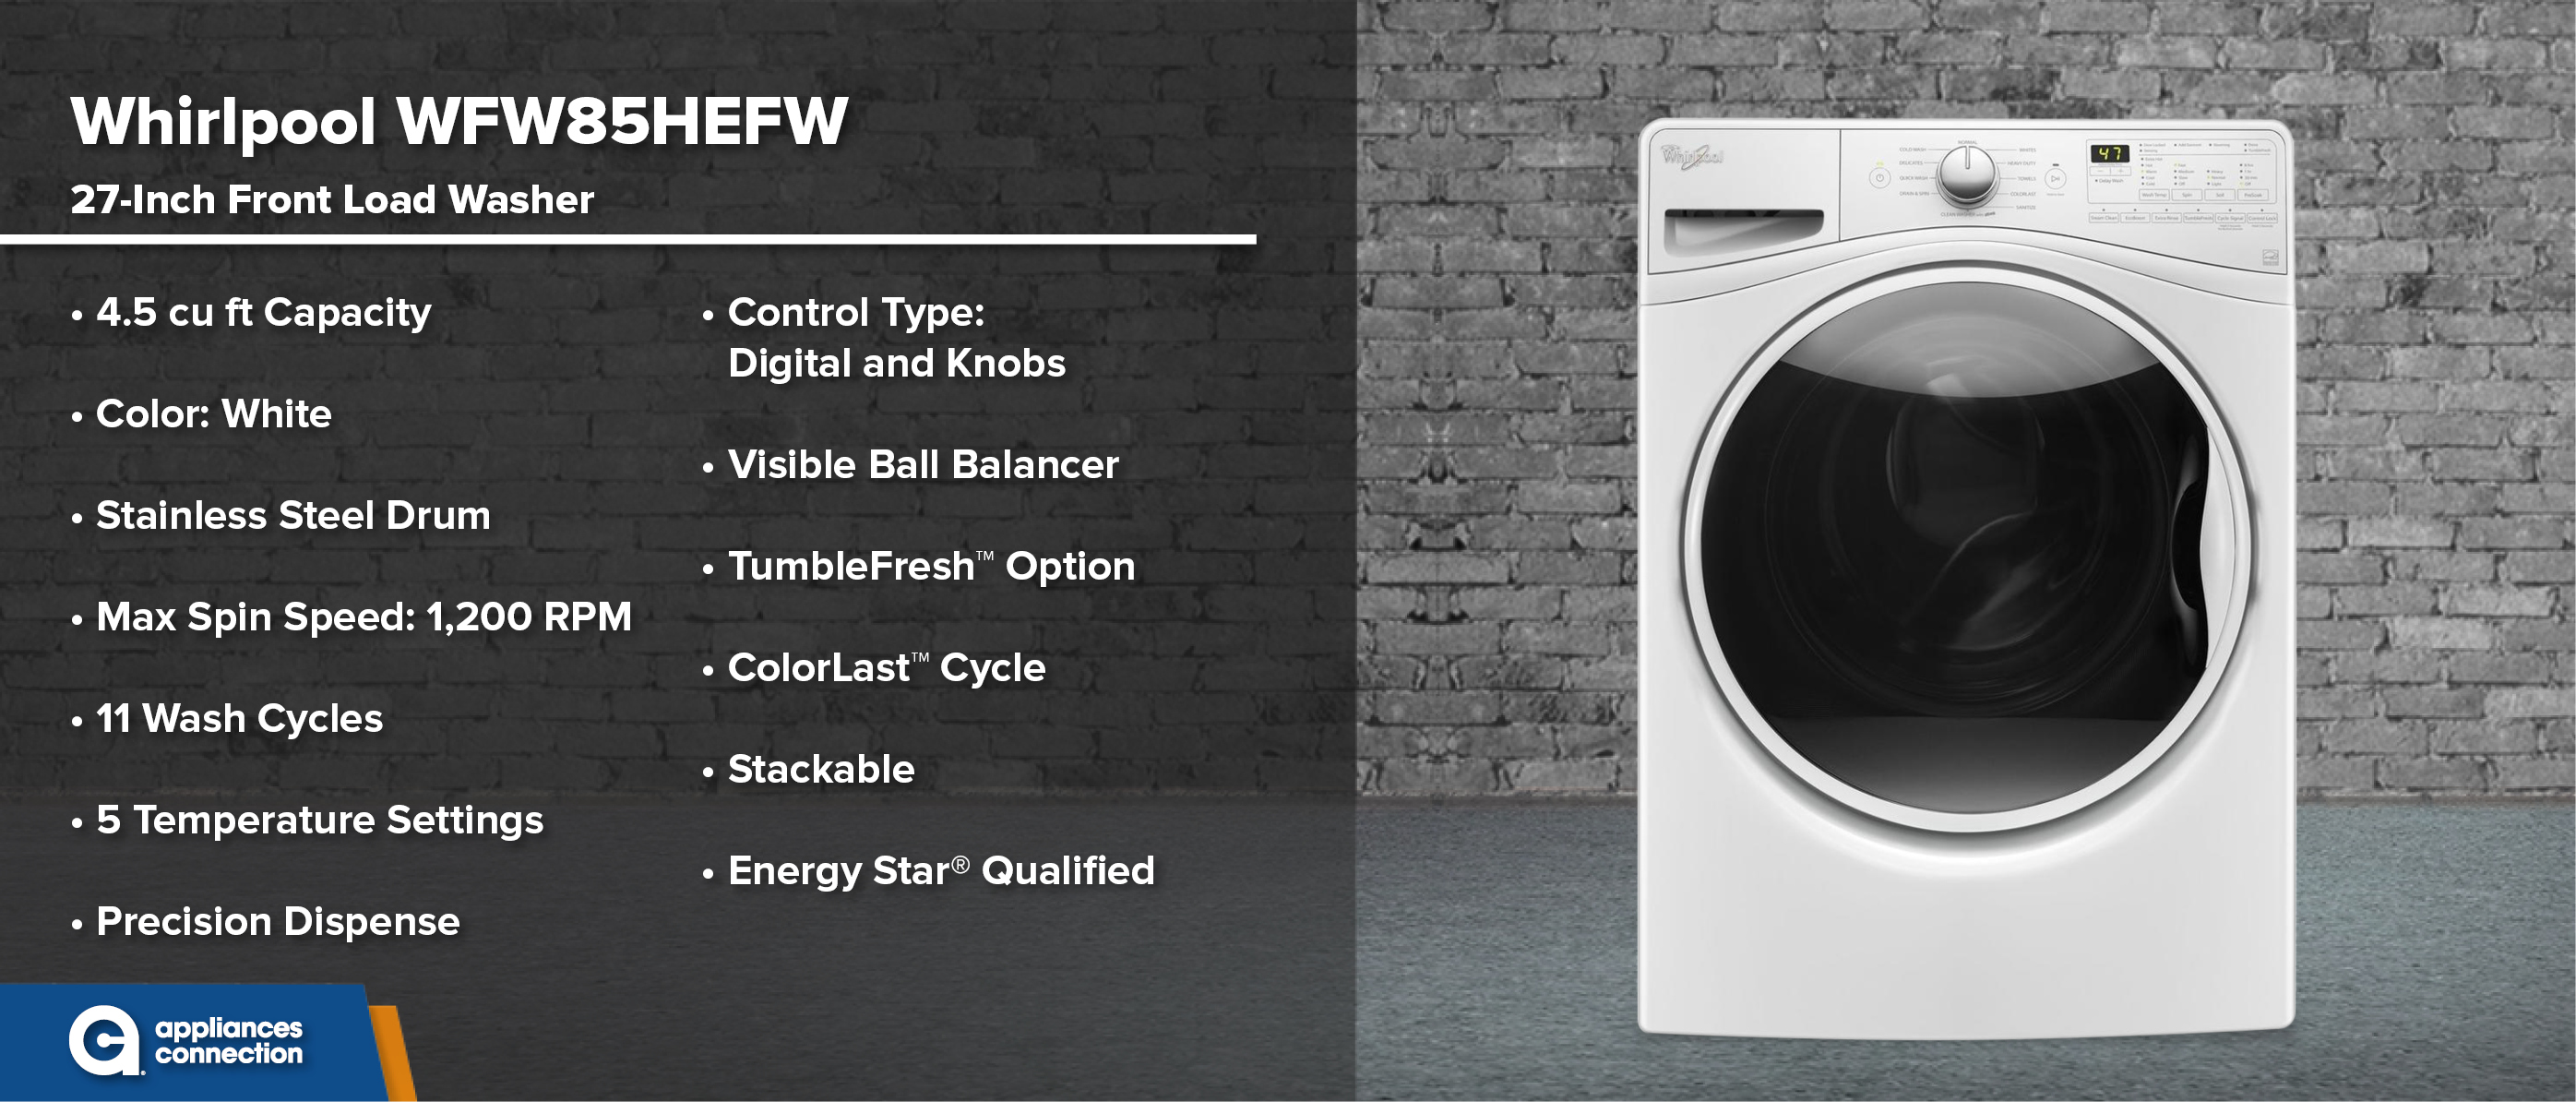 Whirlpool WFW85HEFW 27-Inch Front Load Washer